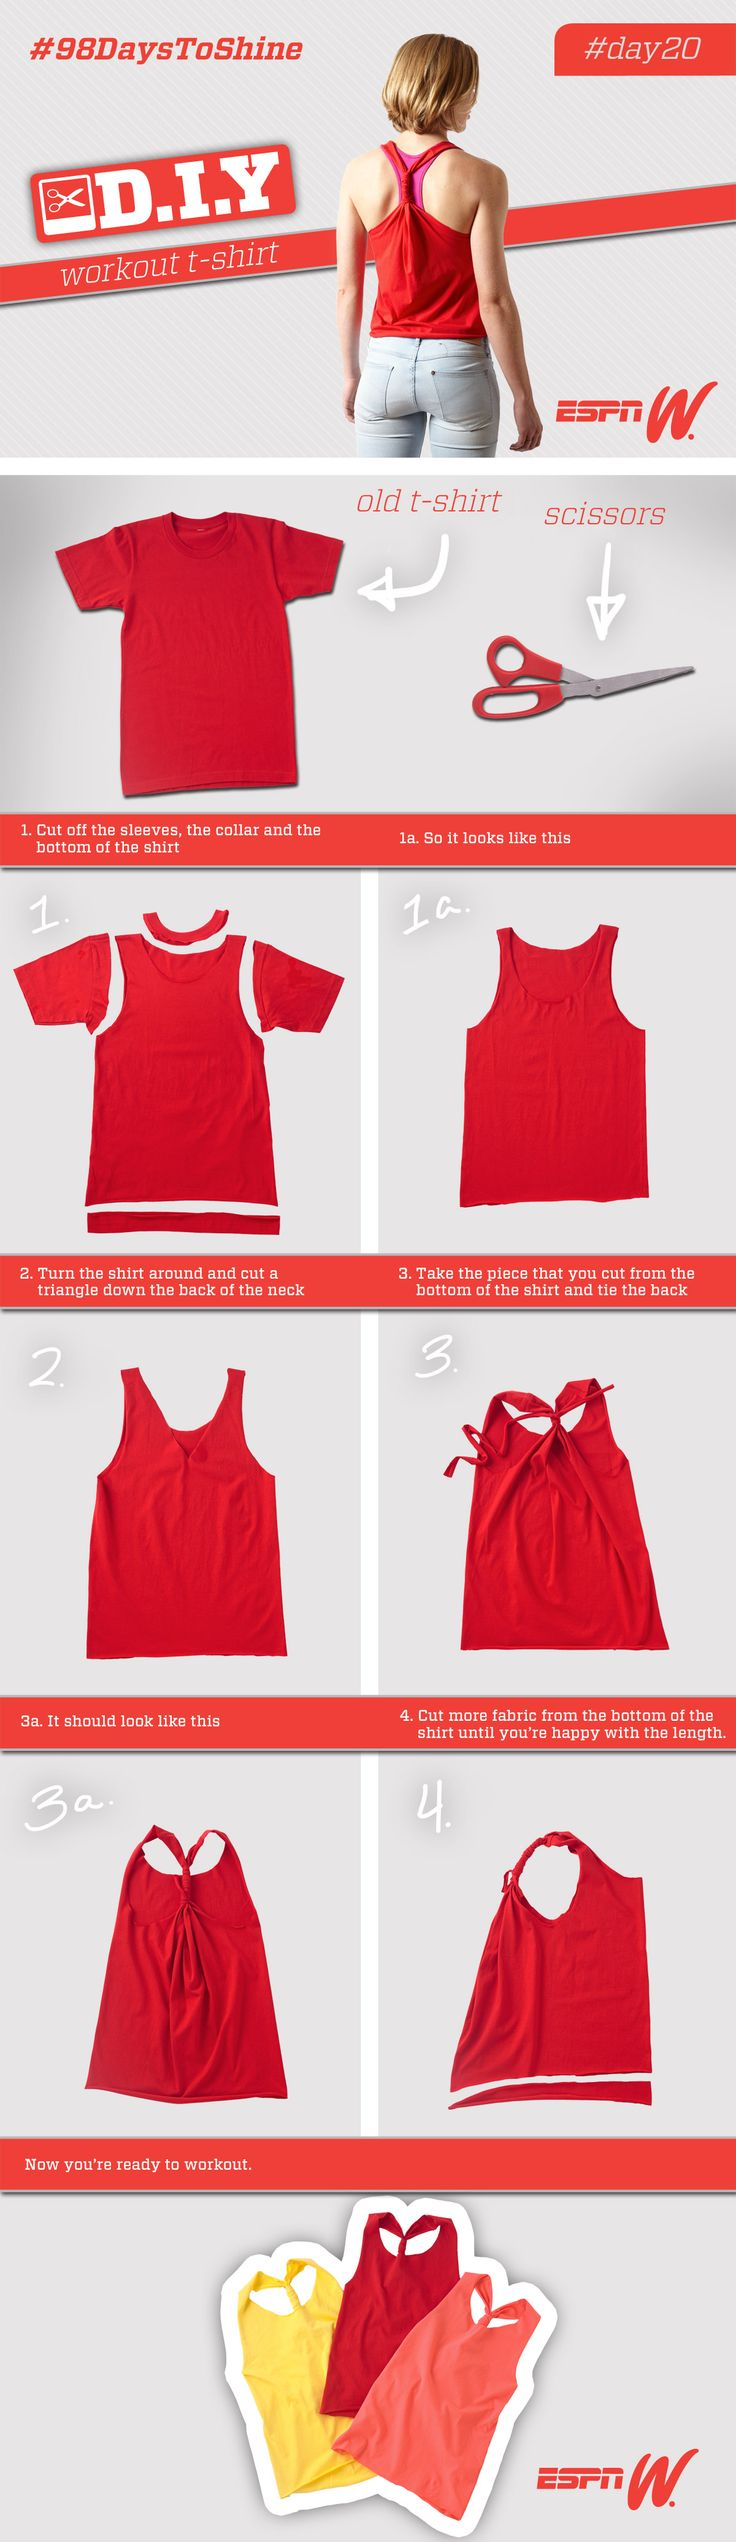 50 best workout shirts images on pinterest diy shirt diy diy see more learn how to turn an old t shirt into the perfect workout top visit solutioingenieria Gallery